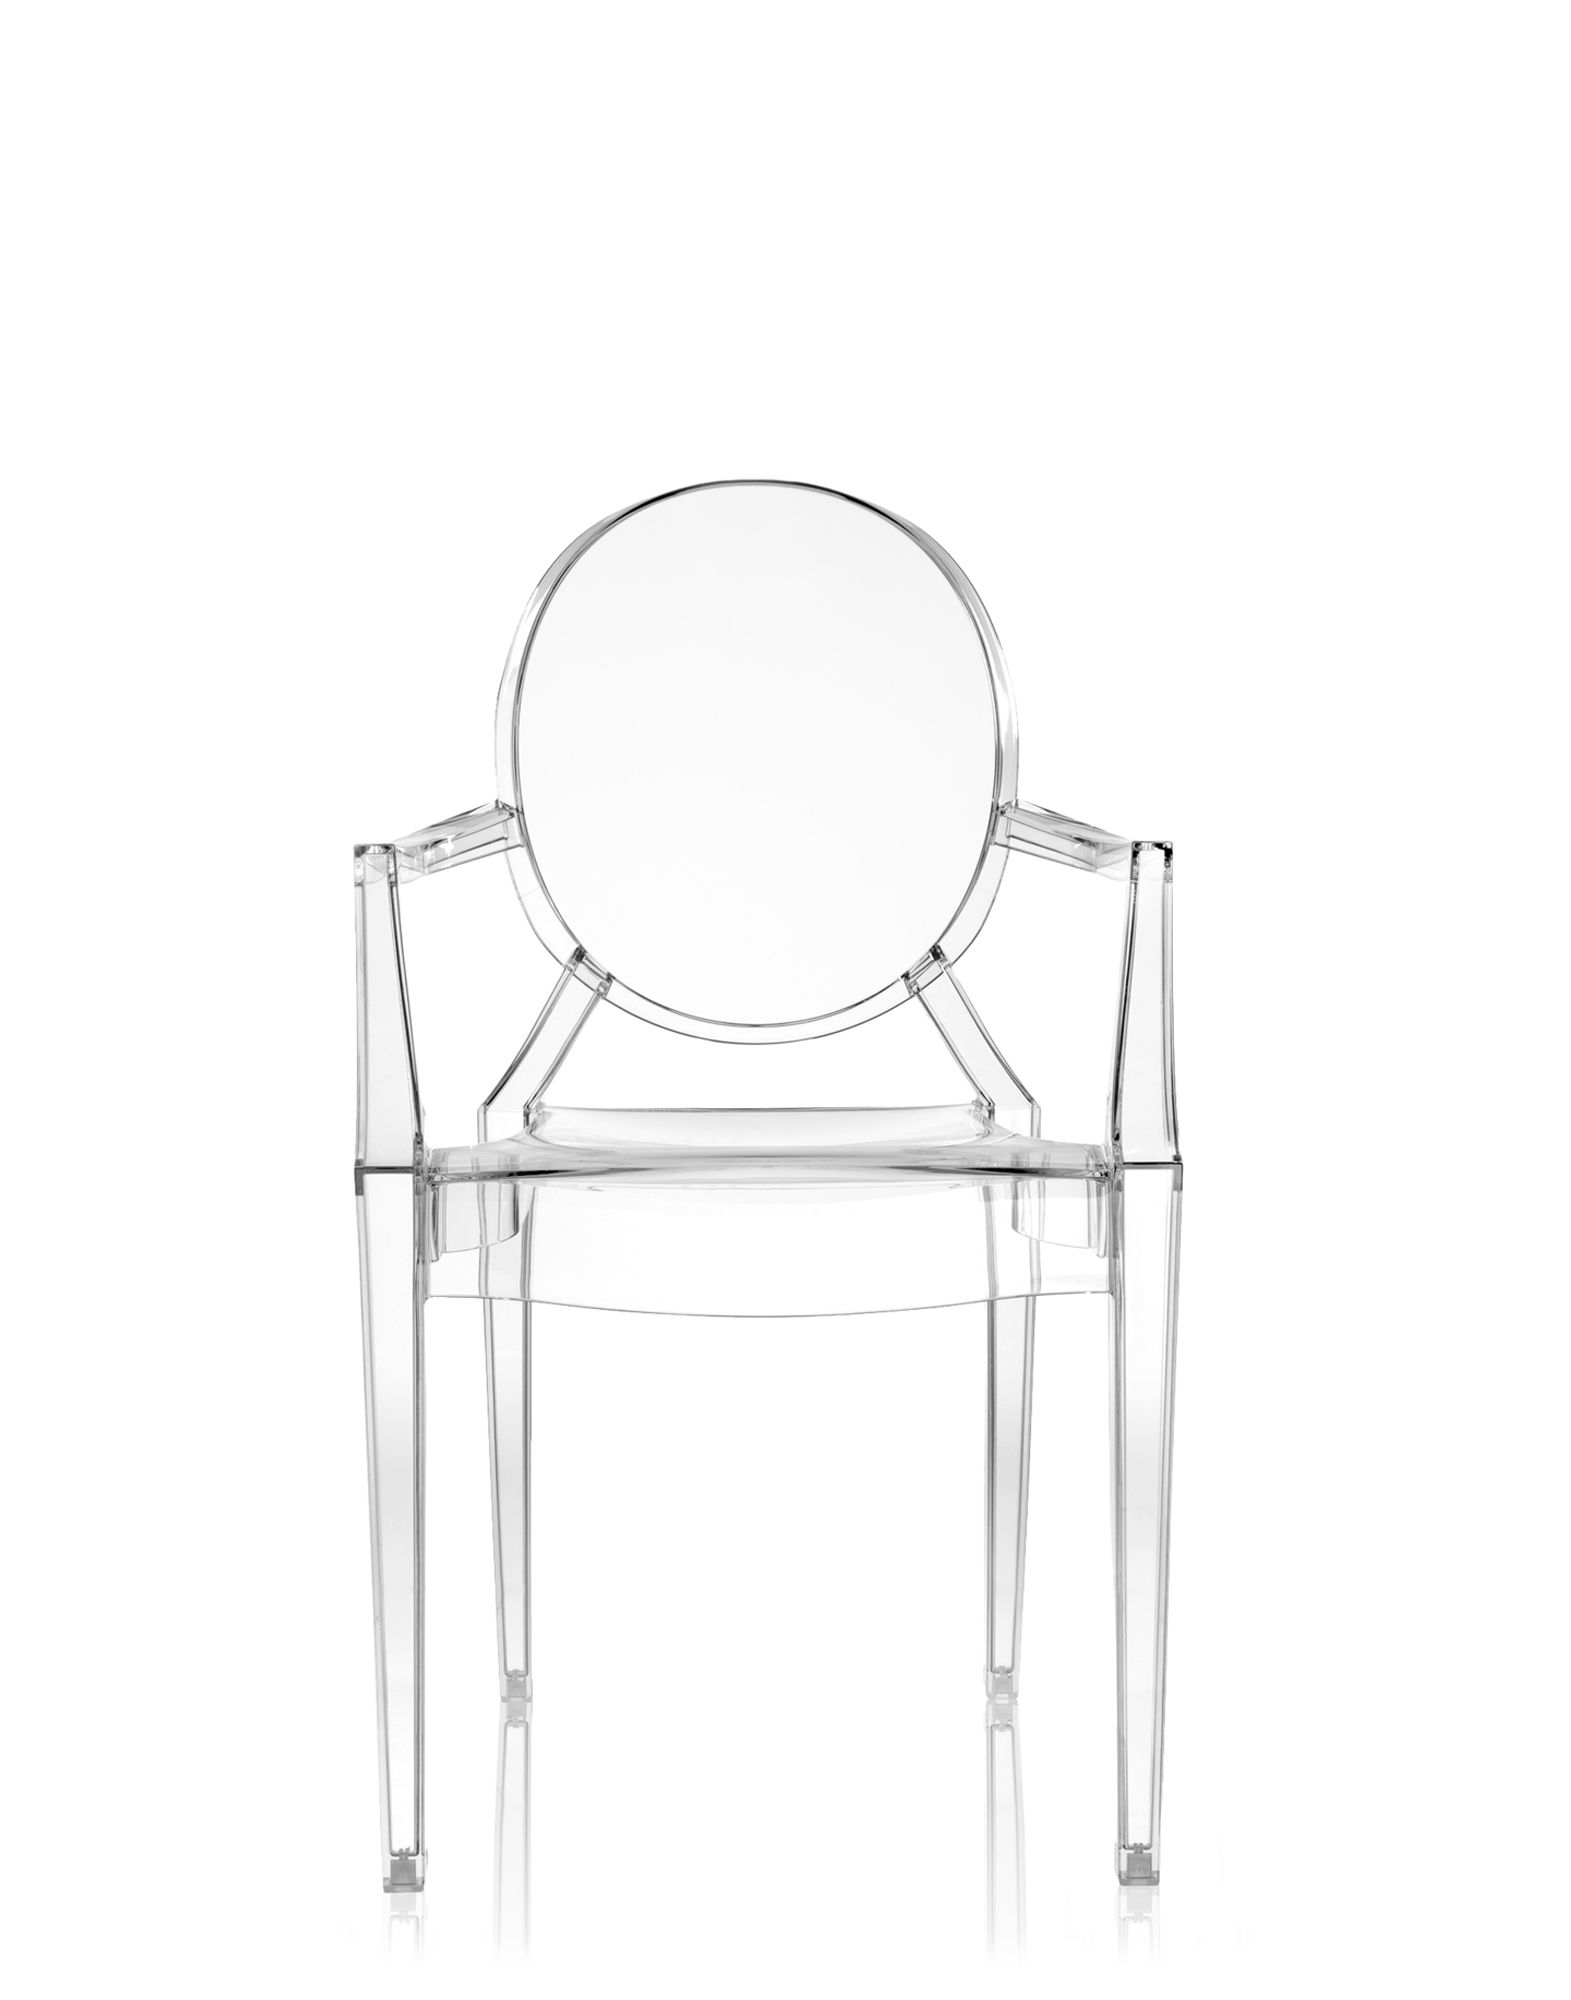 Chaise Kartell Louis Ghost Philippe Starck